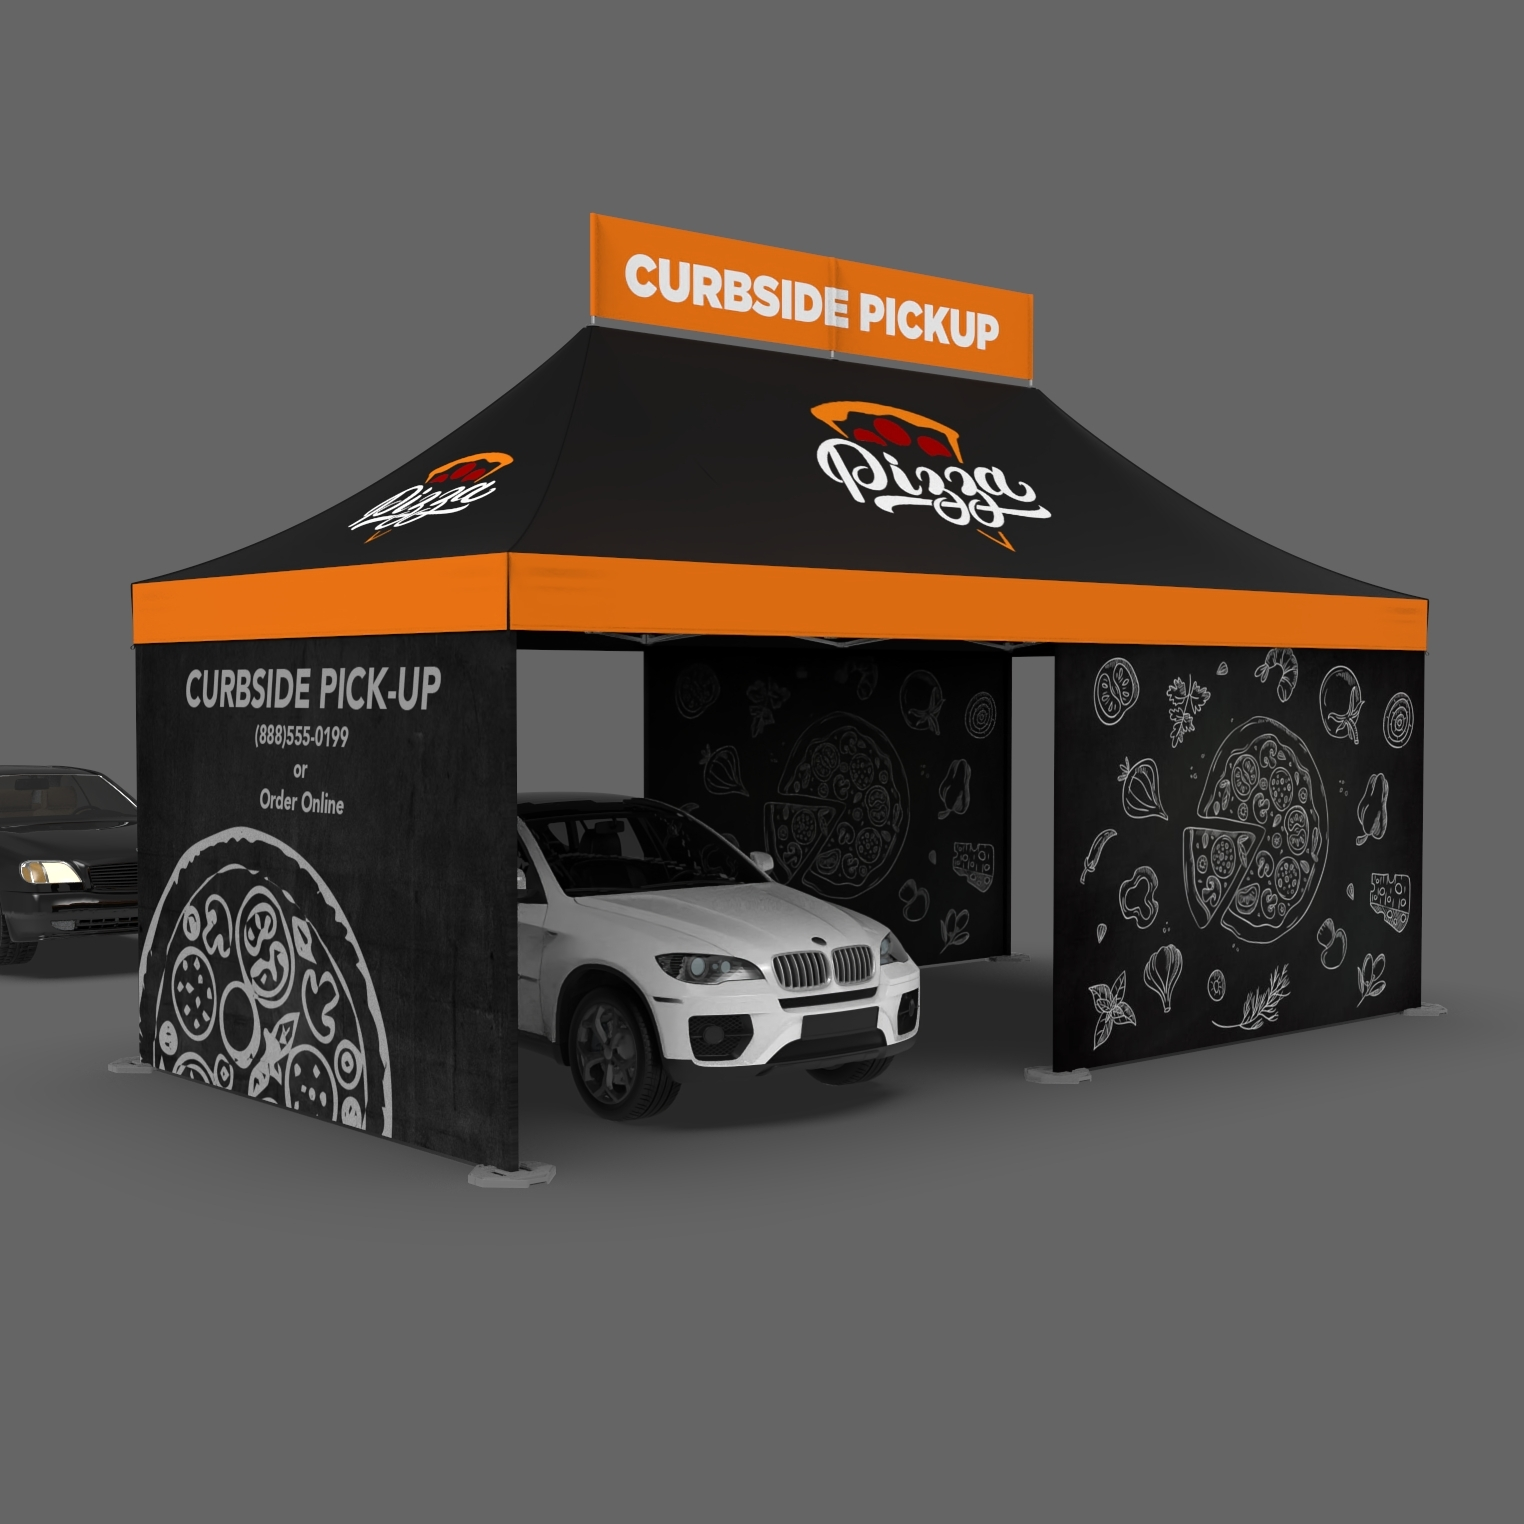 Drive thru pizza tent with black and orange custom printed walls and top banner saying curbside pickup